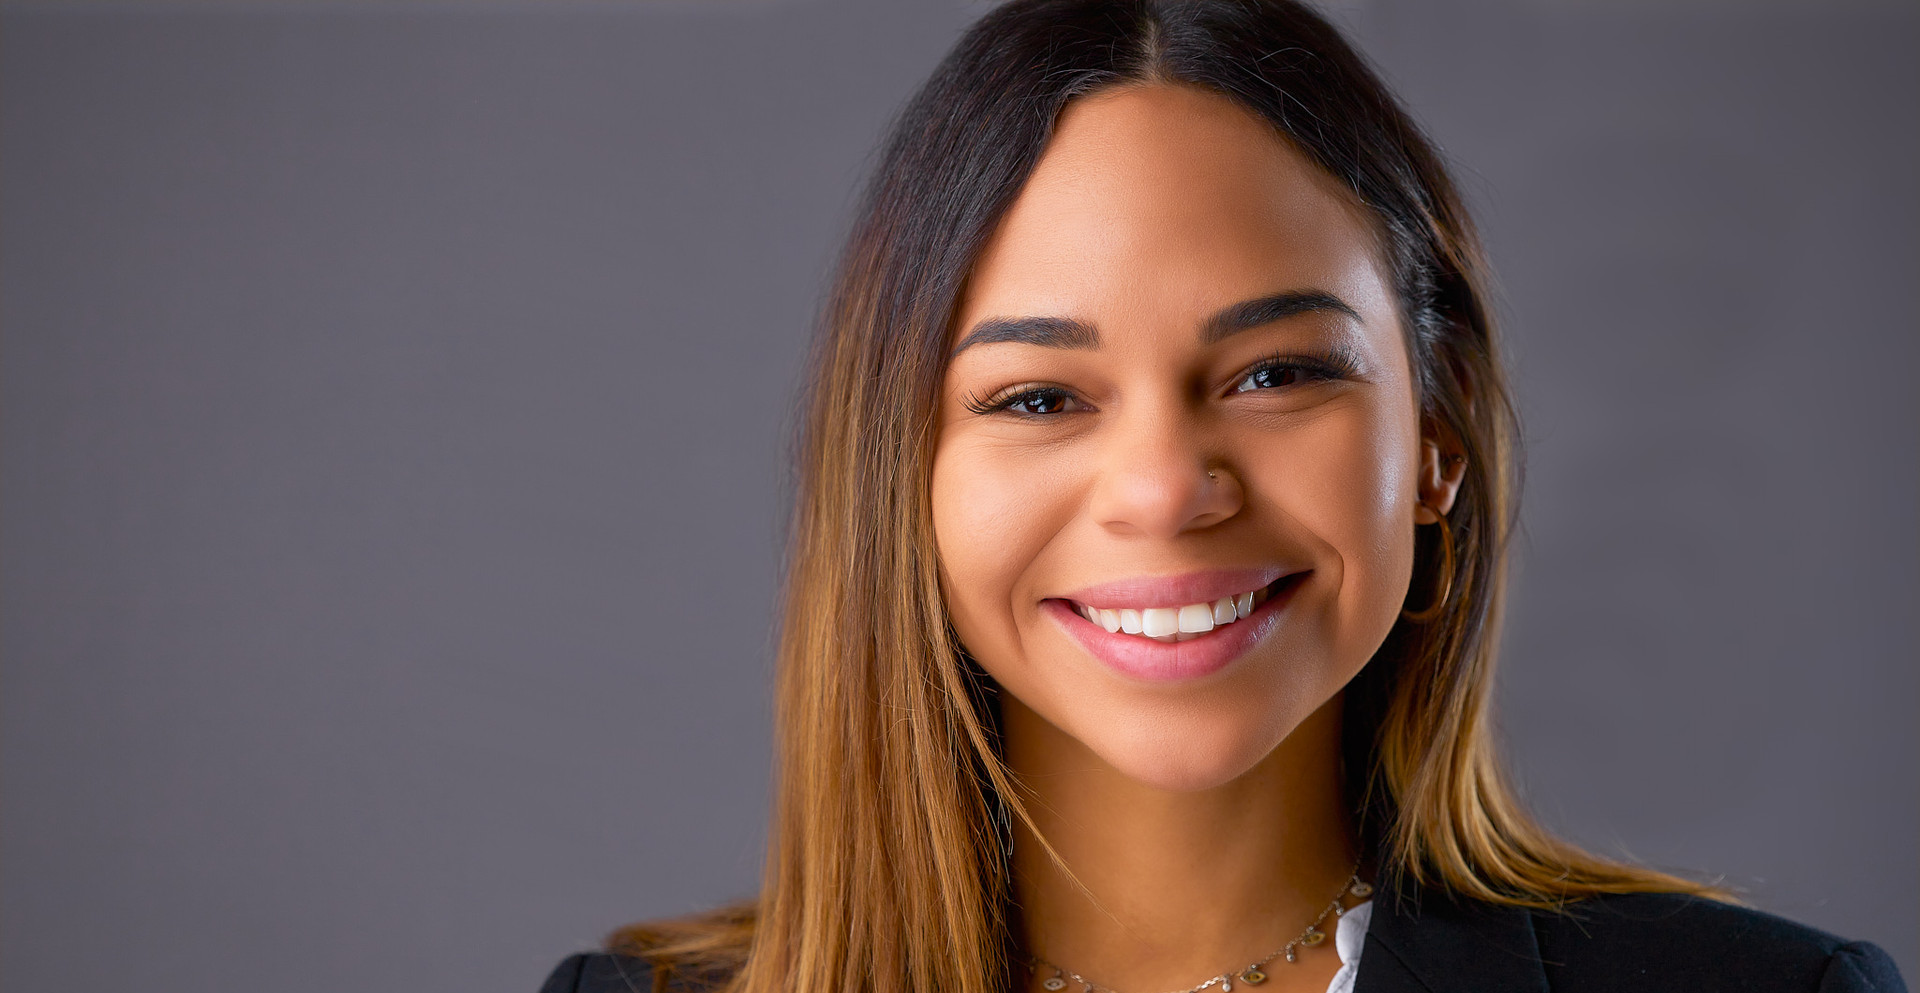 Headshot Photography by High End Pro